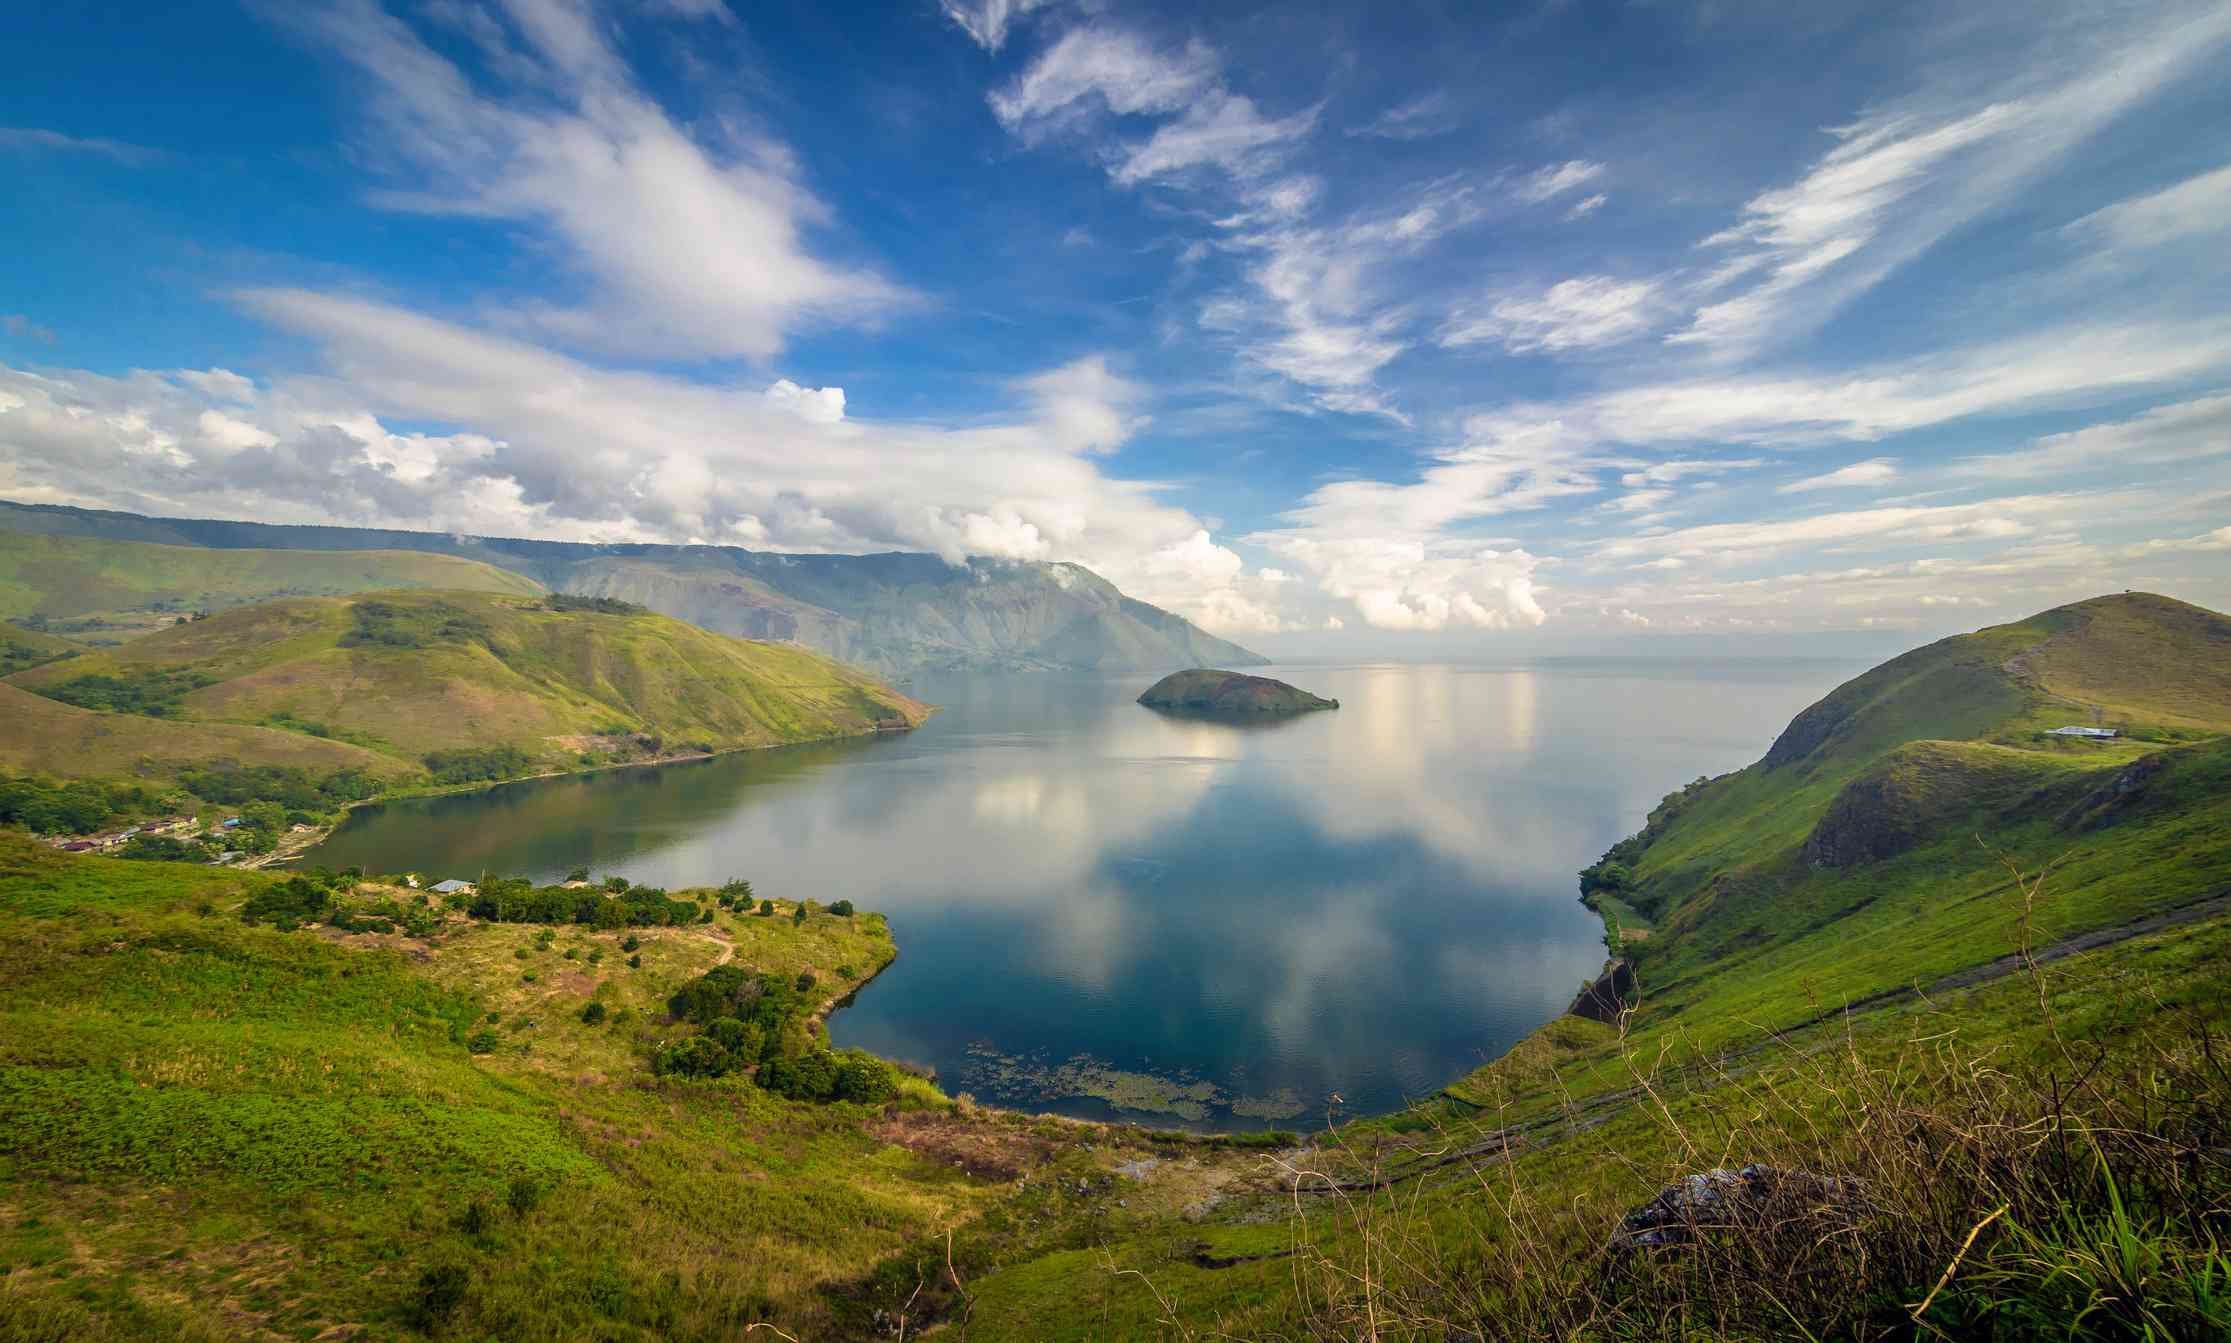 An aerial view of Lake Toba with lush greenery in the foreground.